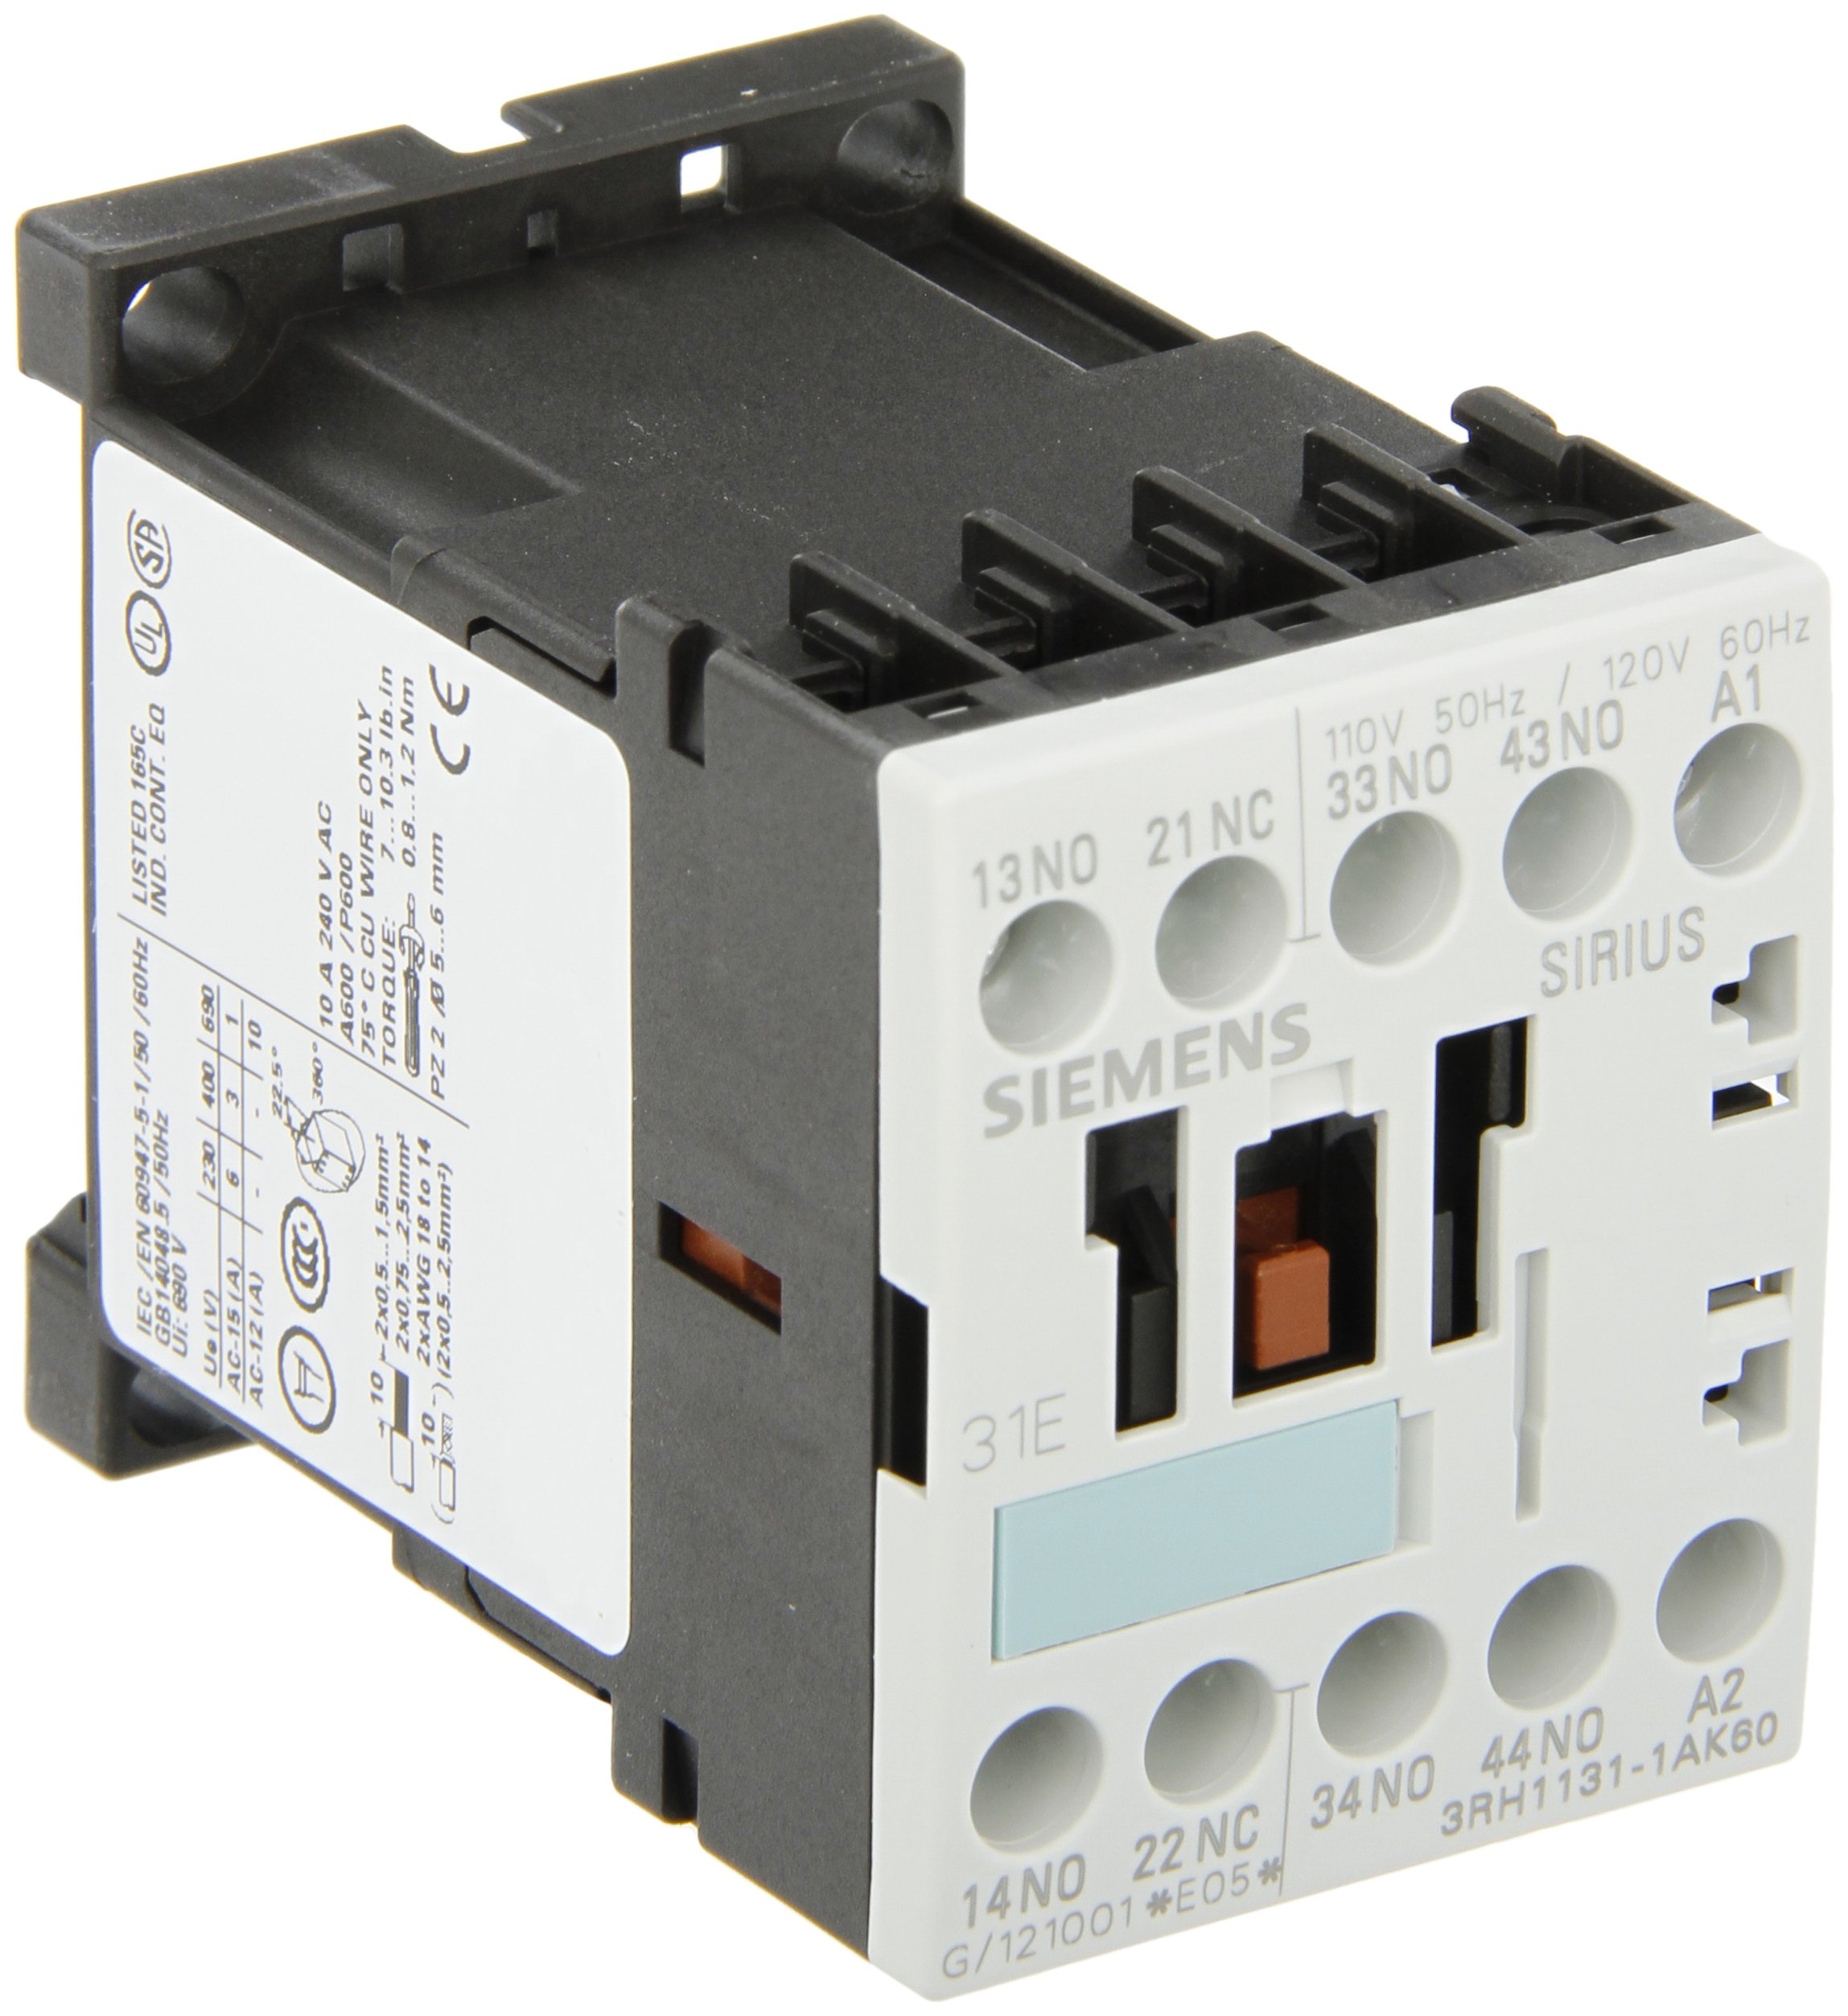 Siemens 3RH11 31-1AK60 Control Relay, Size S00, 35mm Standard Mounting Rail, AC Operation, Screw Connection, 31 E Identification Number, 3 NO + 1 NC Contacts, 120 V 60 Hz Control Supply Voltage